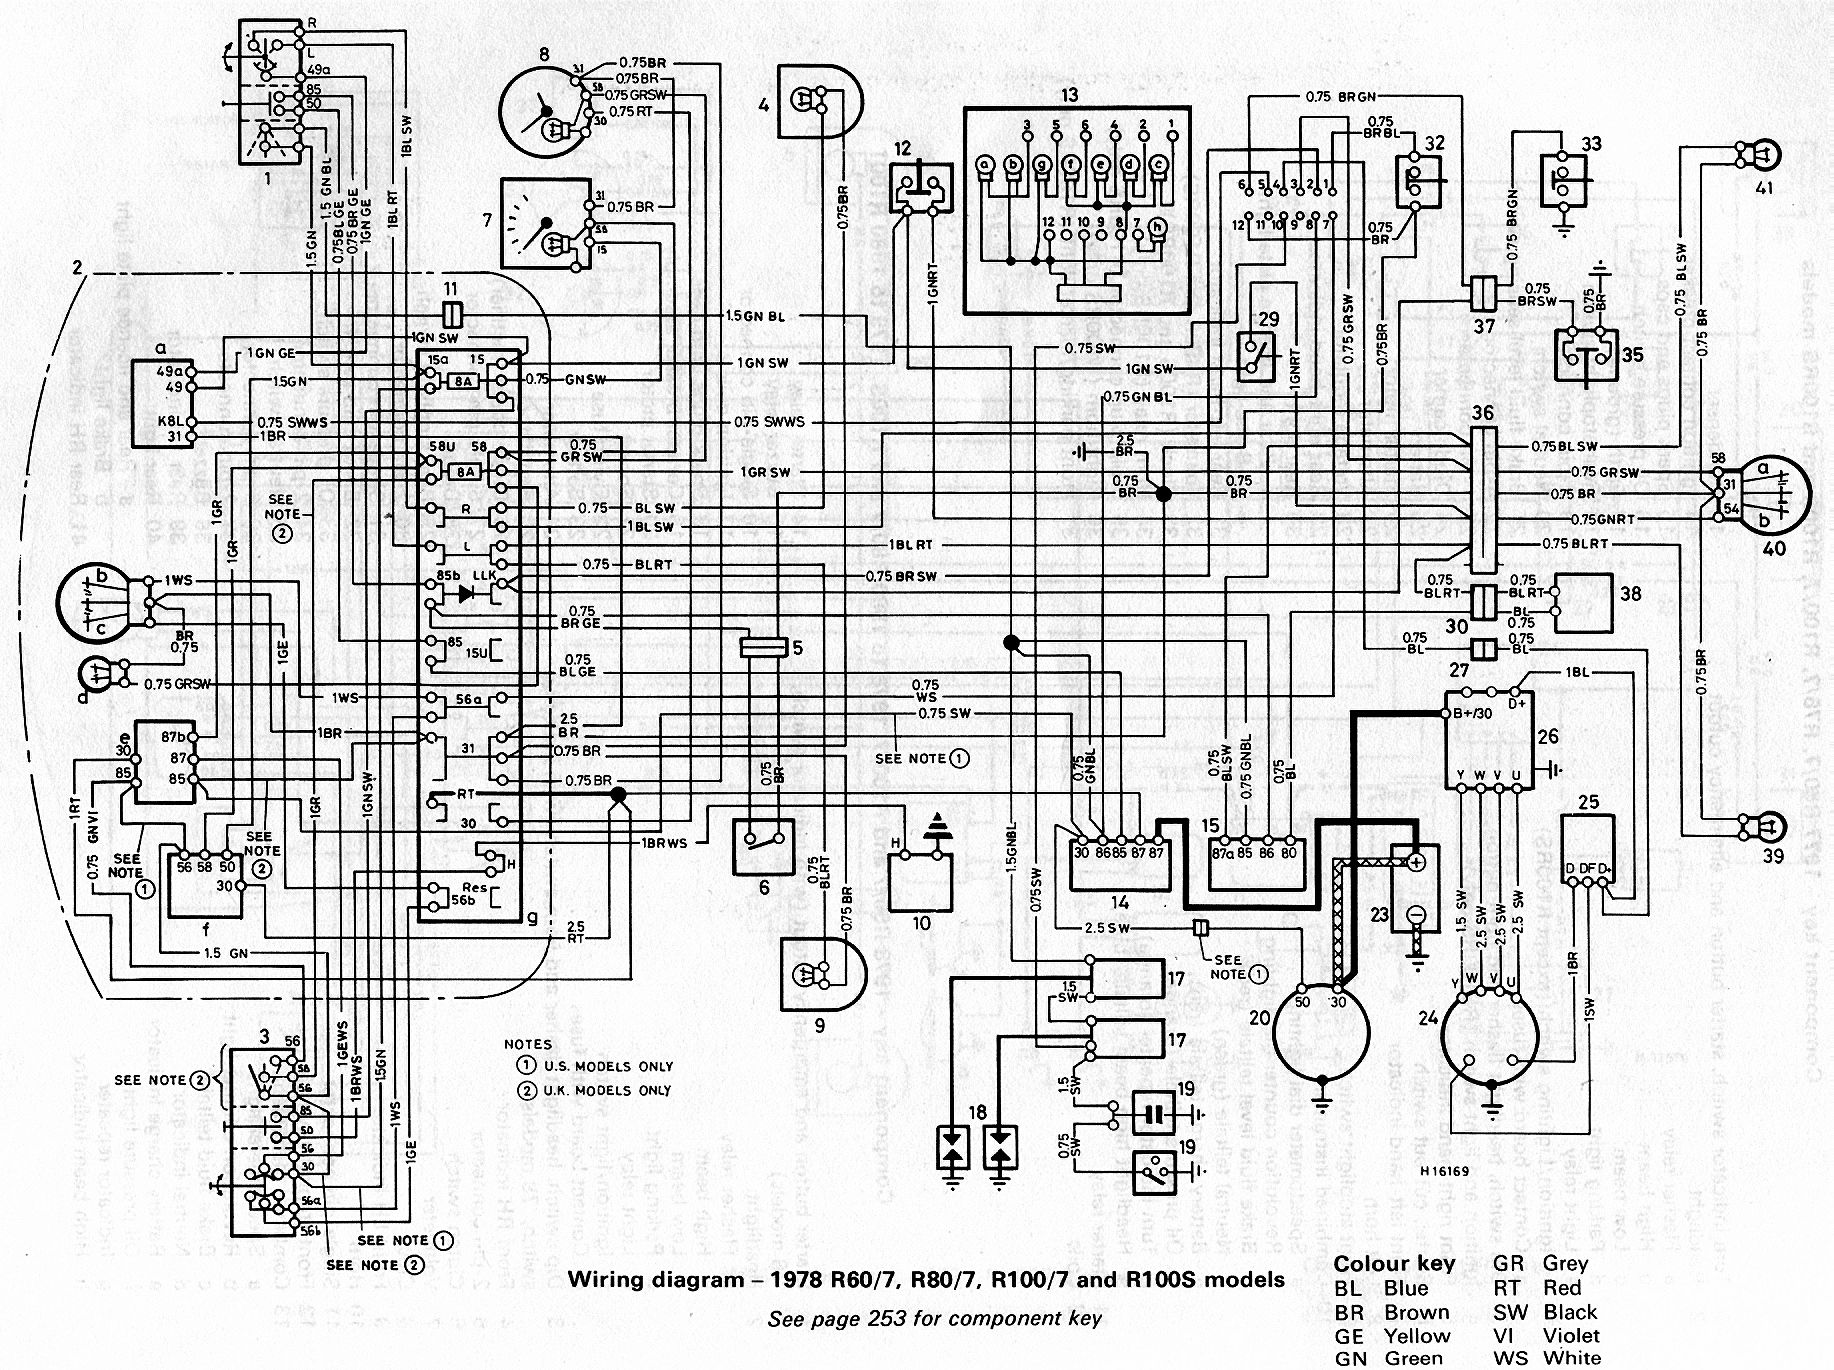 Wiring Diagram Pollak 1923 Basic Guide Harness Bmw R80rt Example Electrical U2022 Rh Cranejapan Co Solenoid